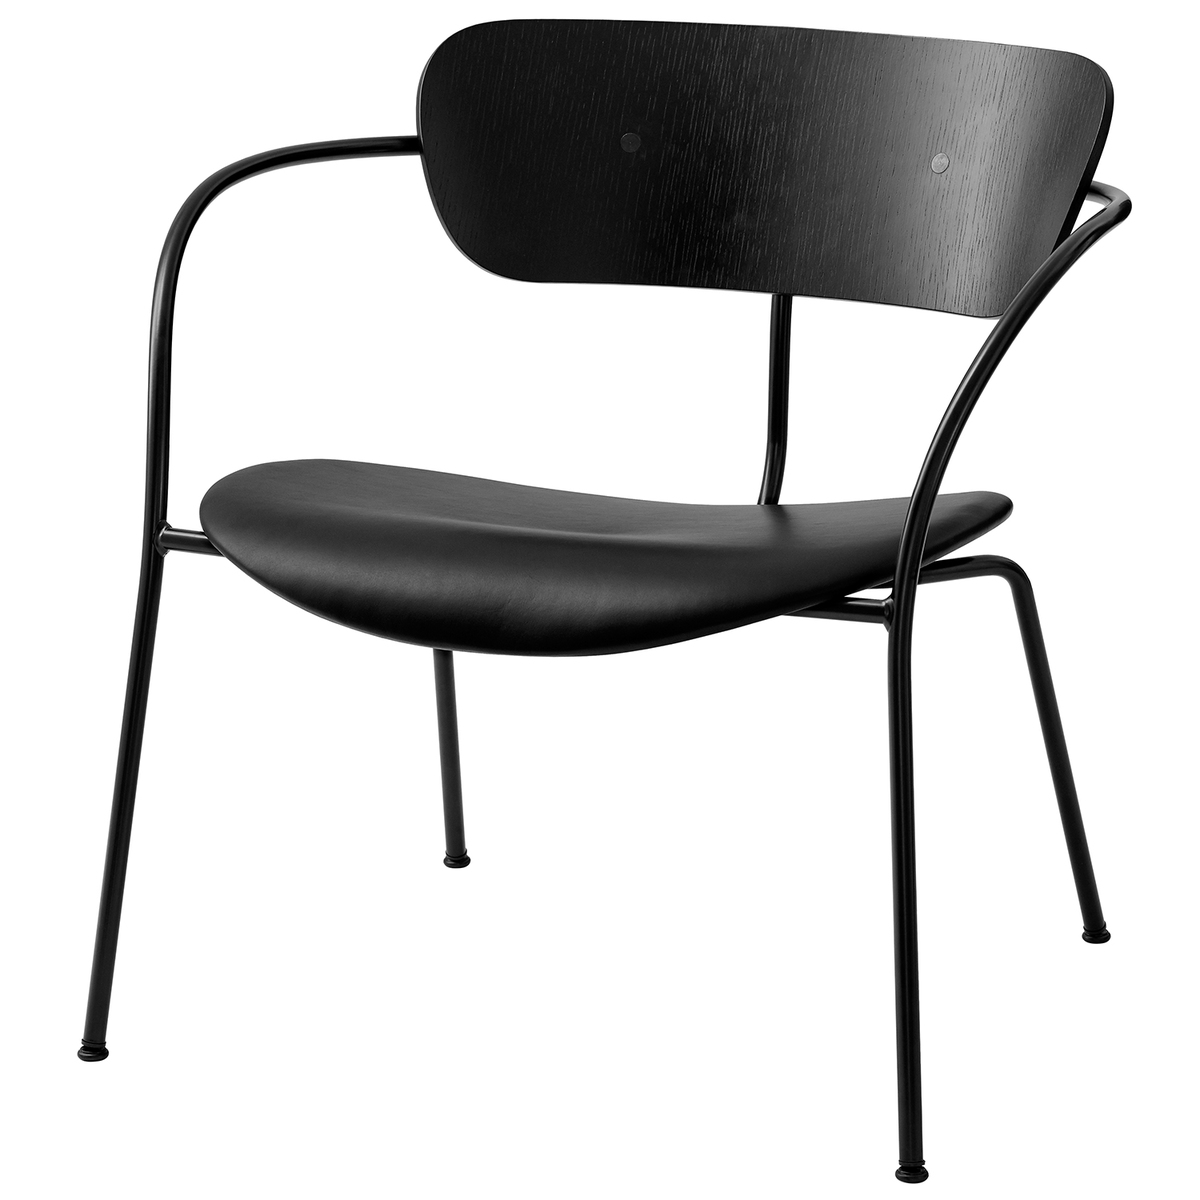 &Tradition Pavilion AV6 lounge chair, black oak - Silk Black leather from &Tradition